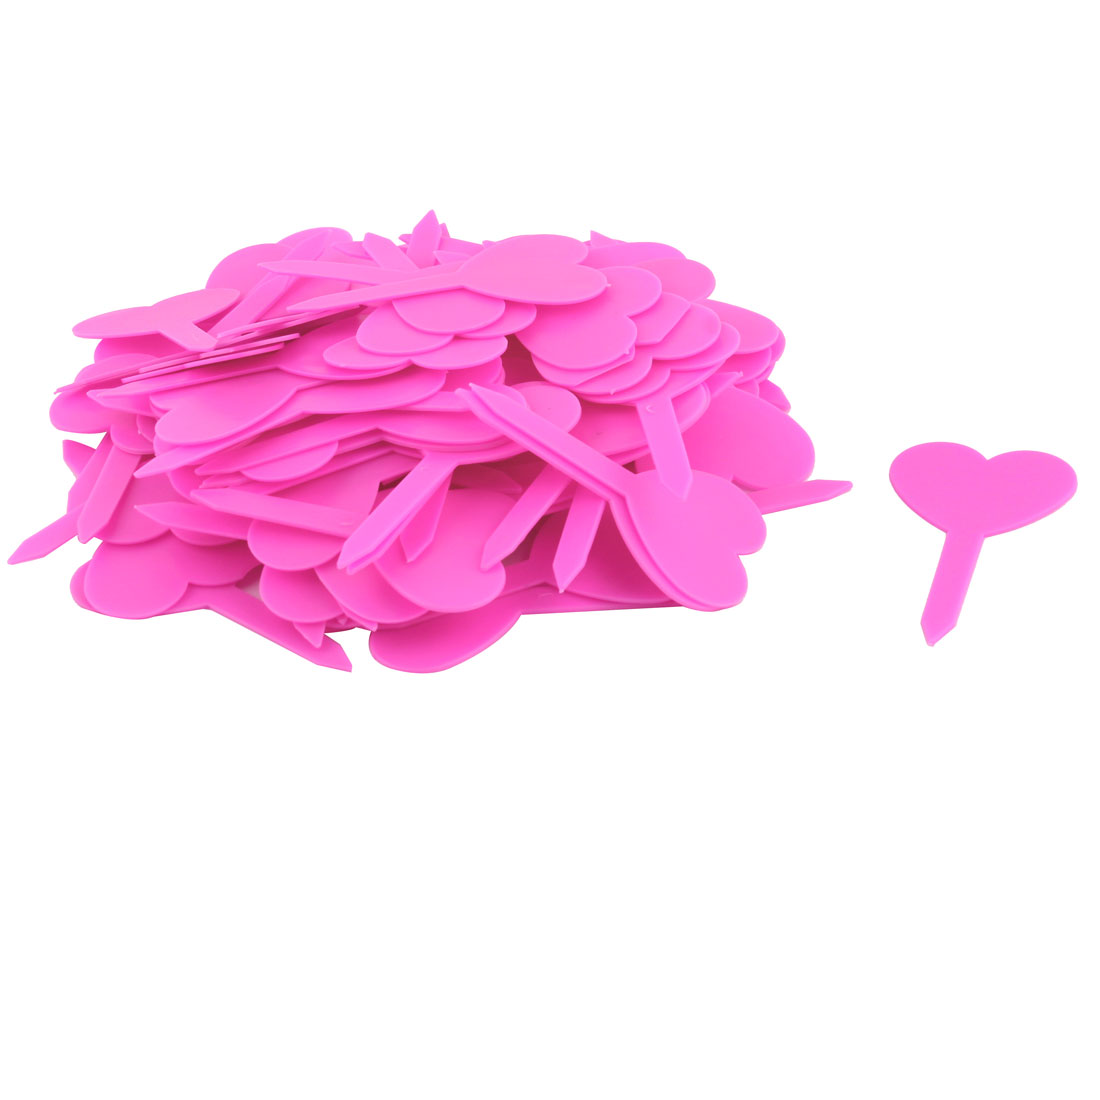 Household Garden Plastic Heart Shaped Plant Seed Tag Label Marker Pink 100pcs